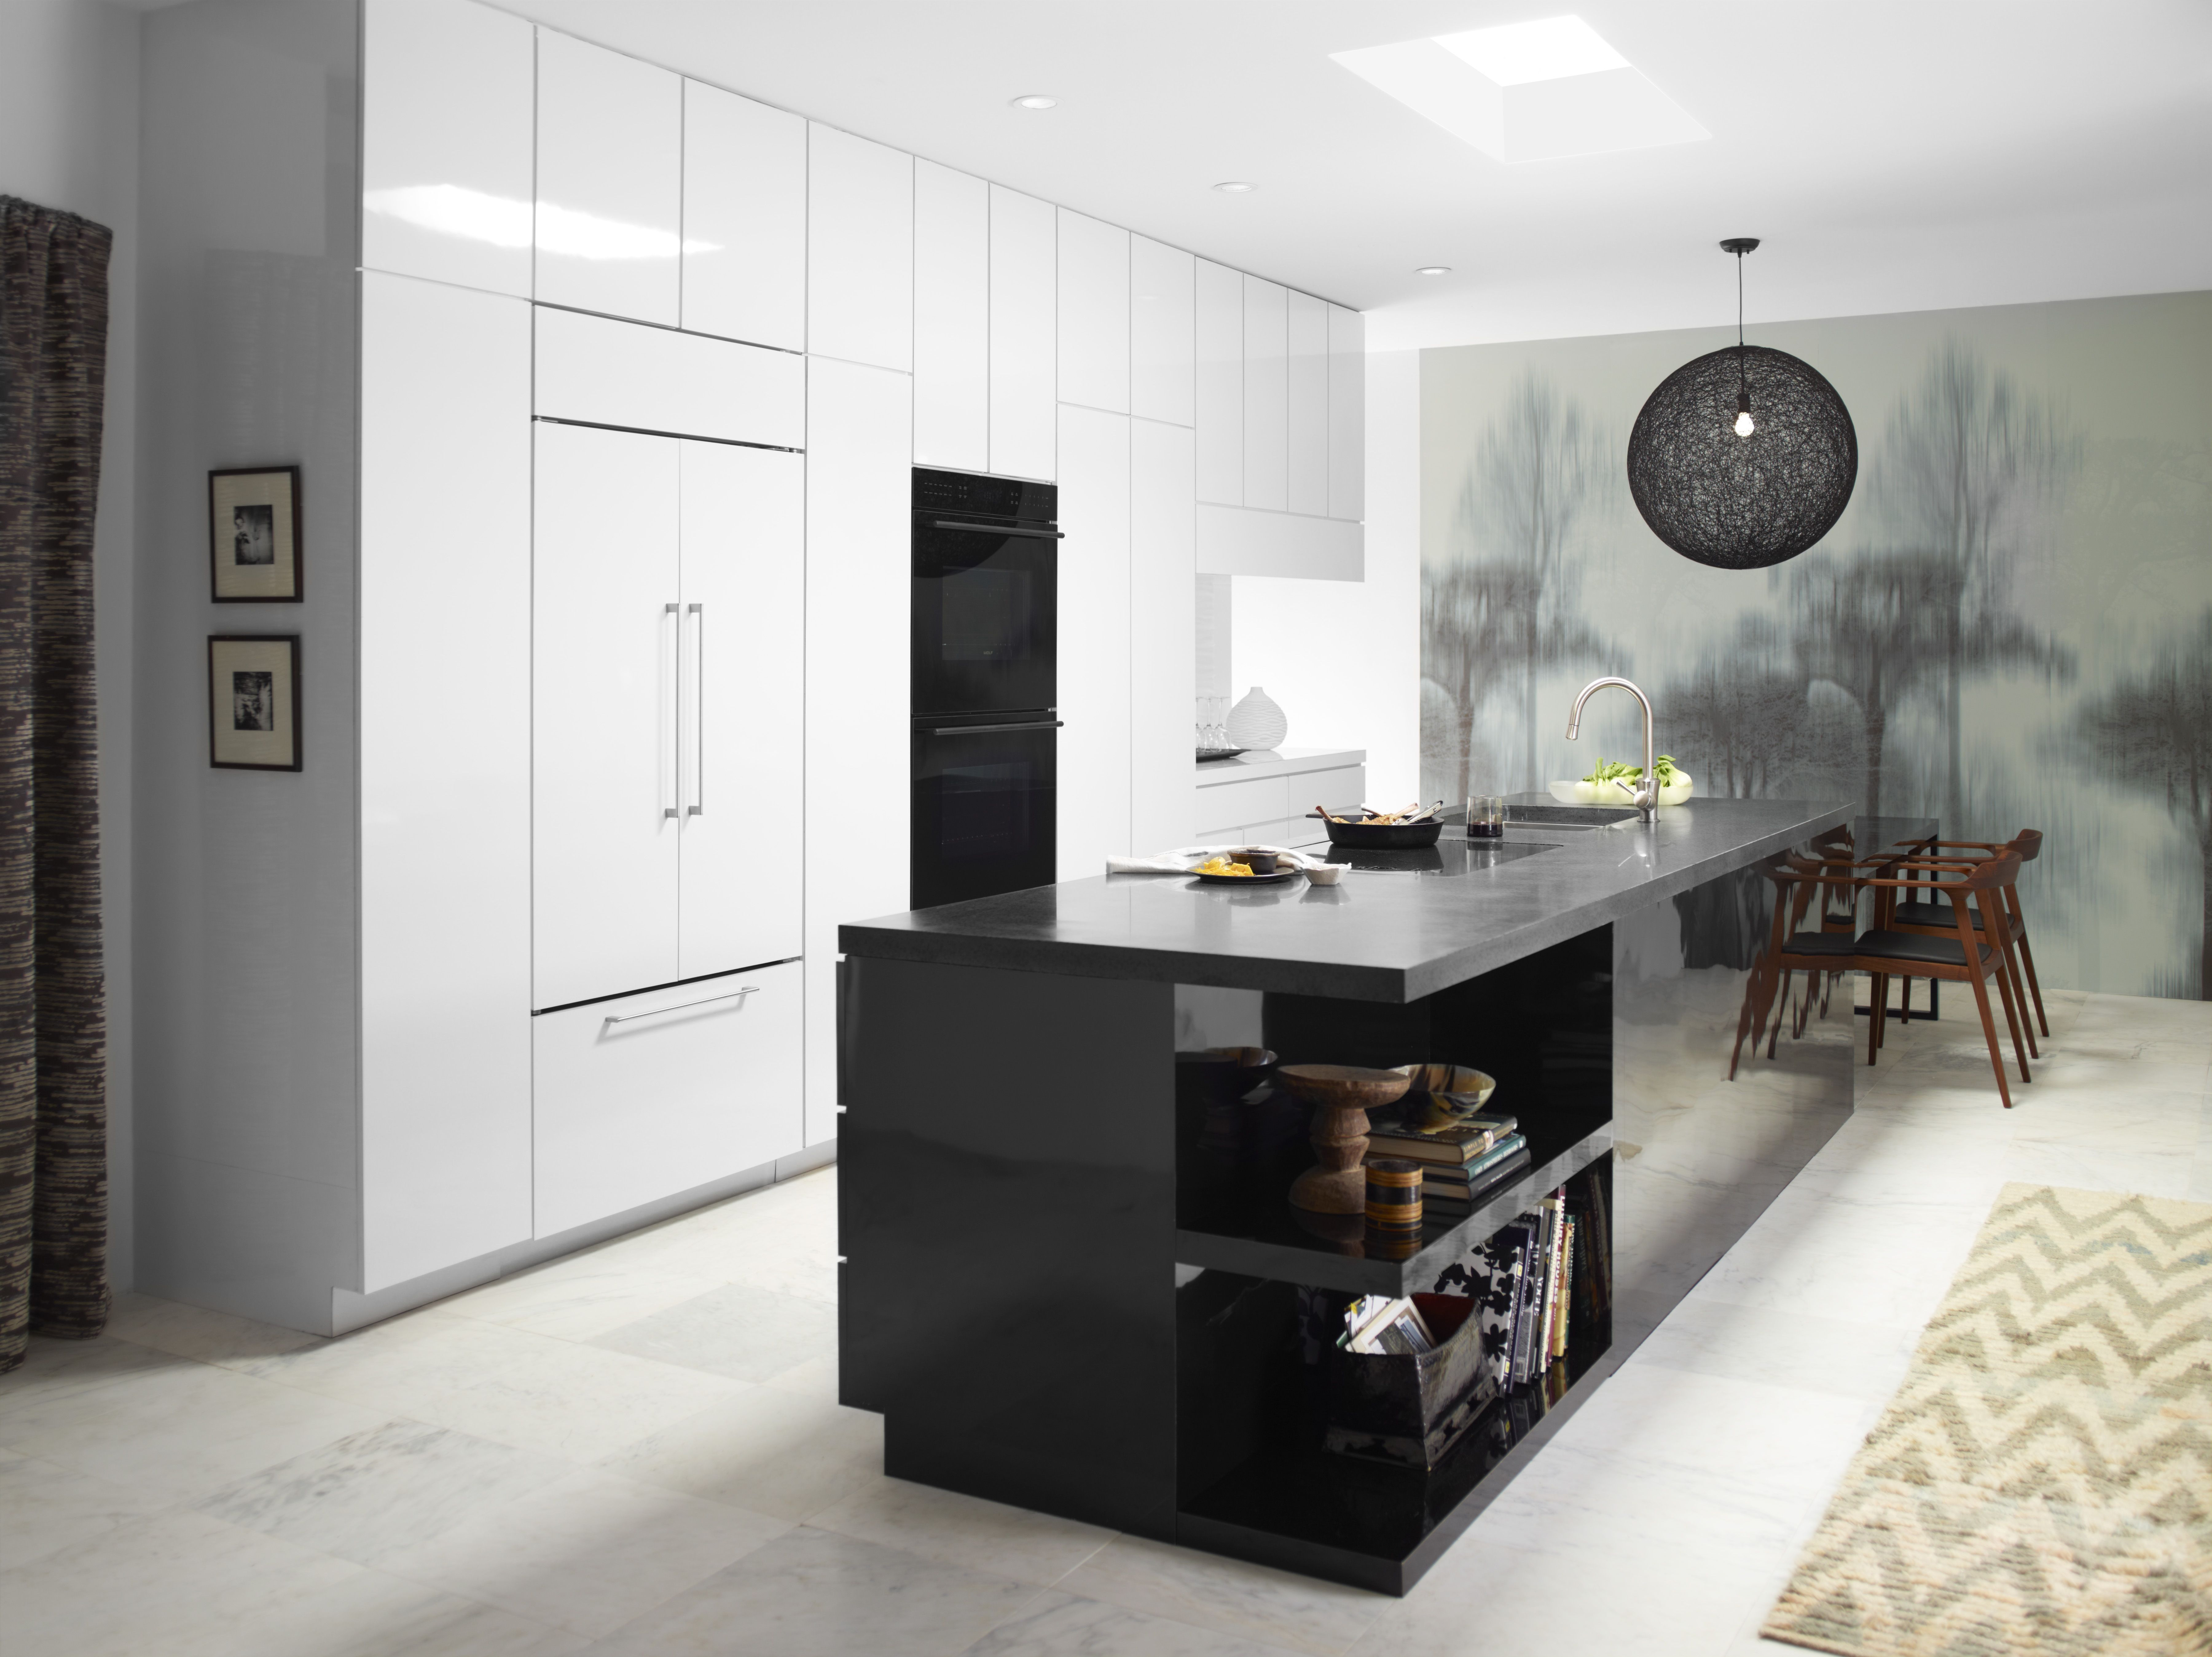 Paneled Appliances To Blend In With Your Cabinets Http://www.subzero